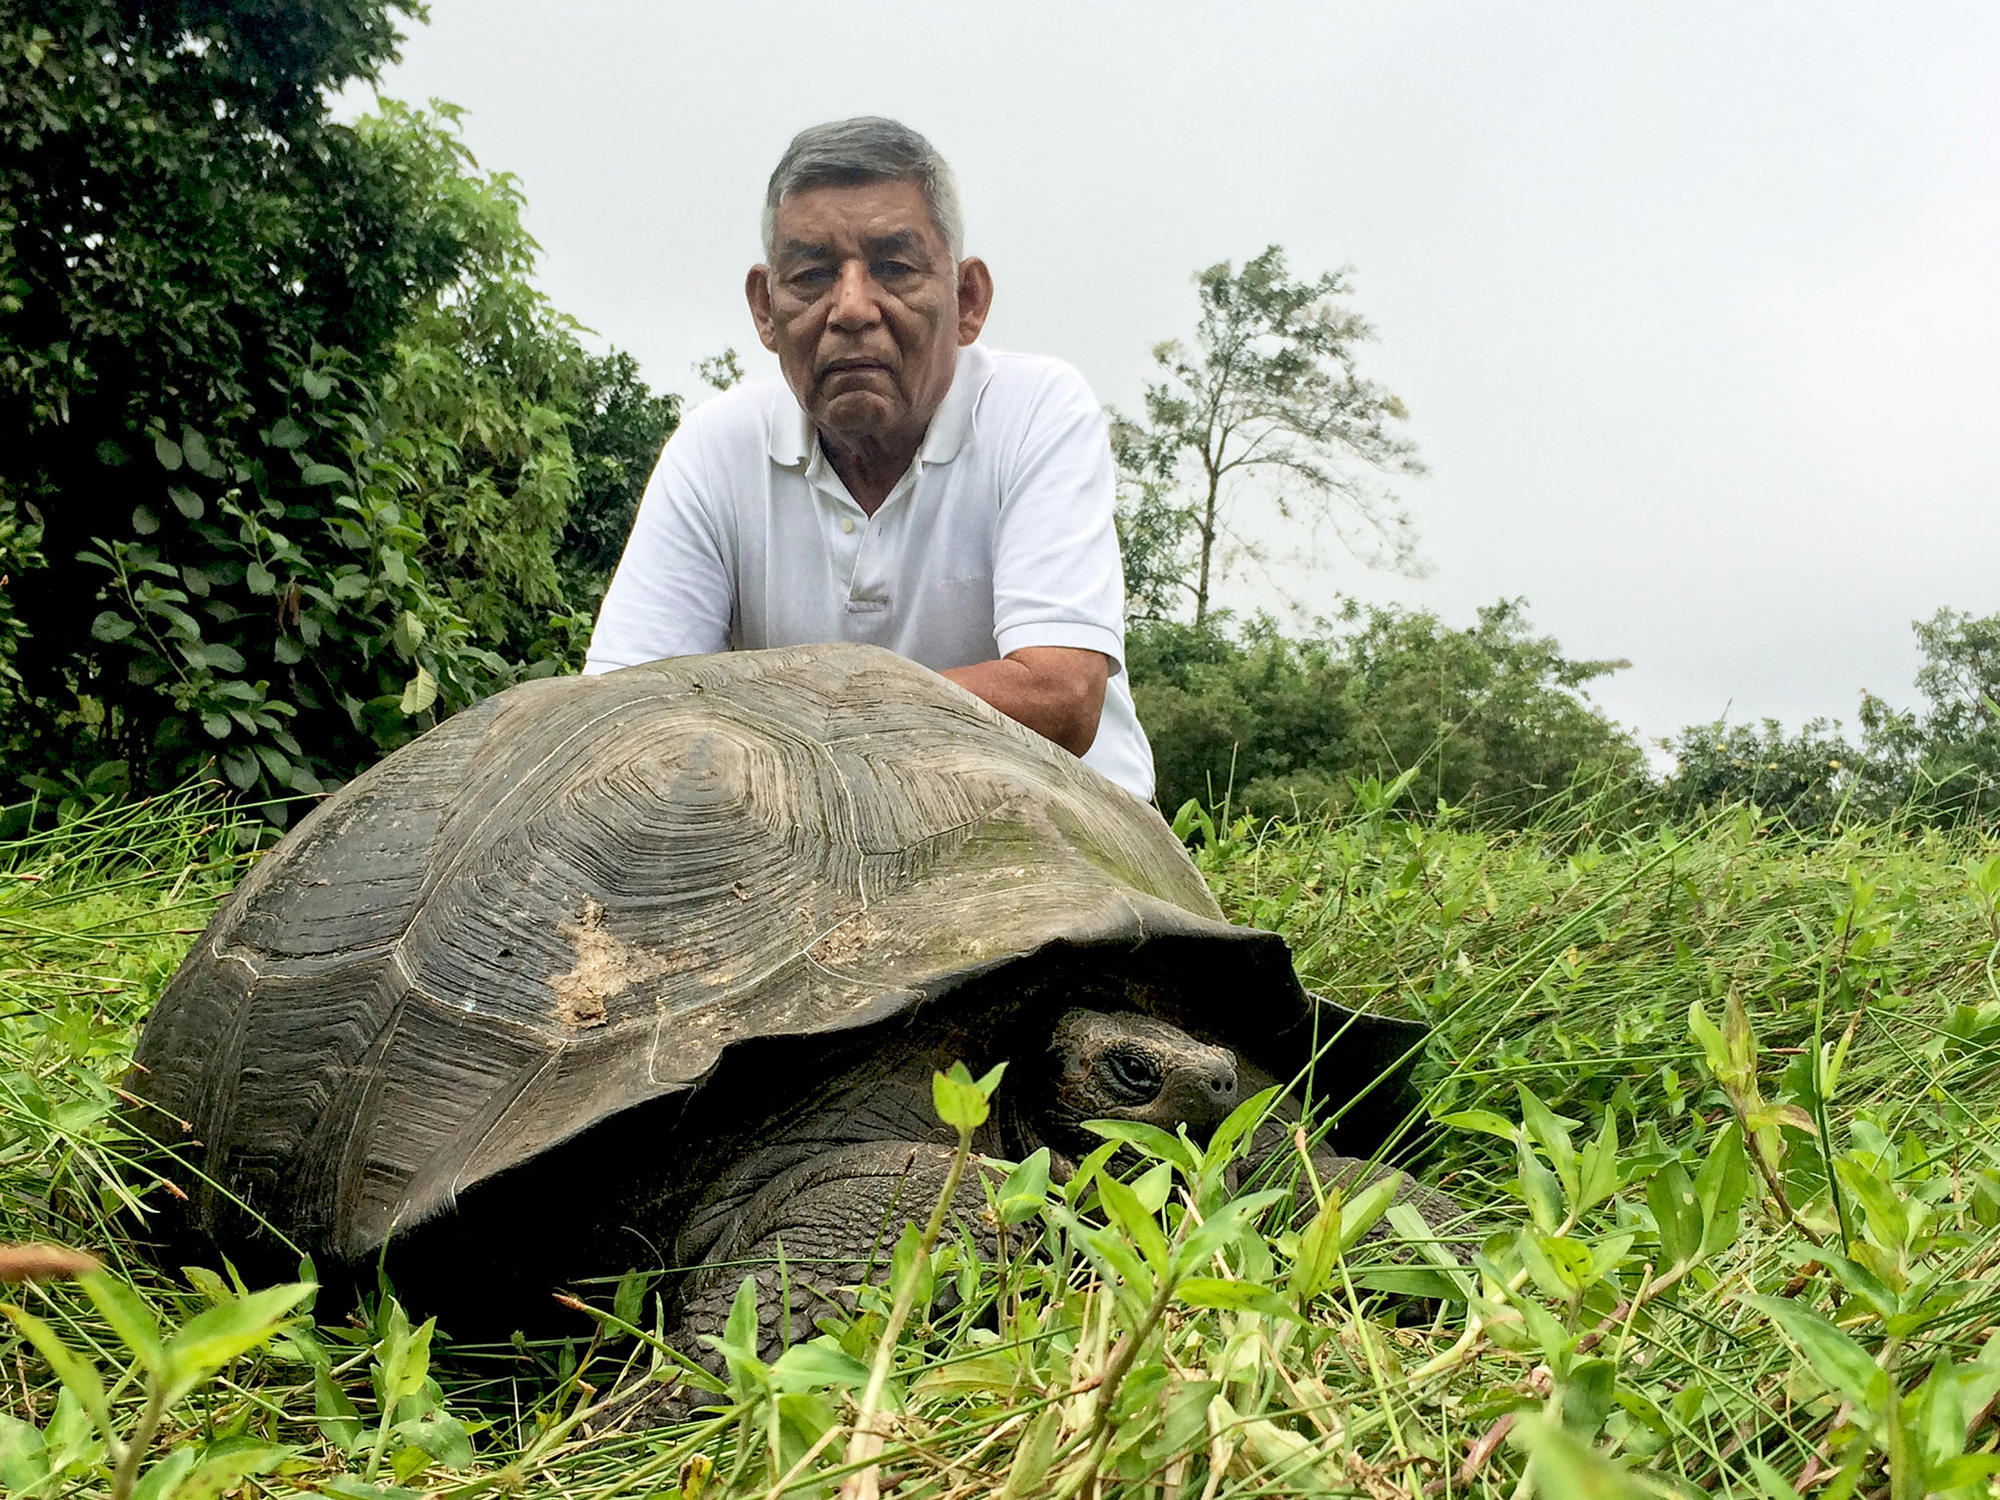 """Don Fausto"" with an Eastern Santa Cruz tortoise"